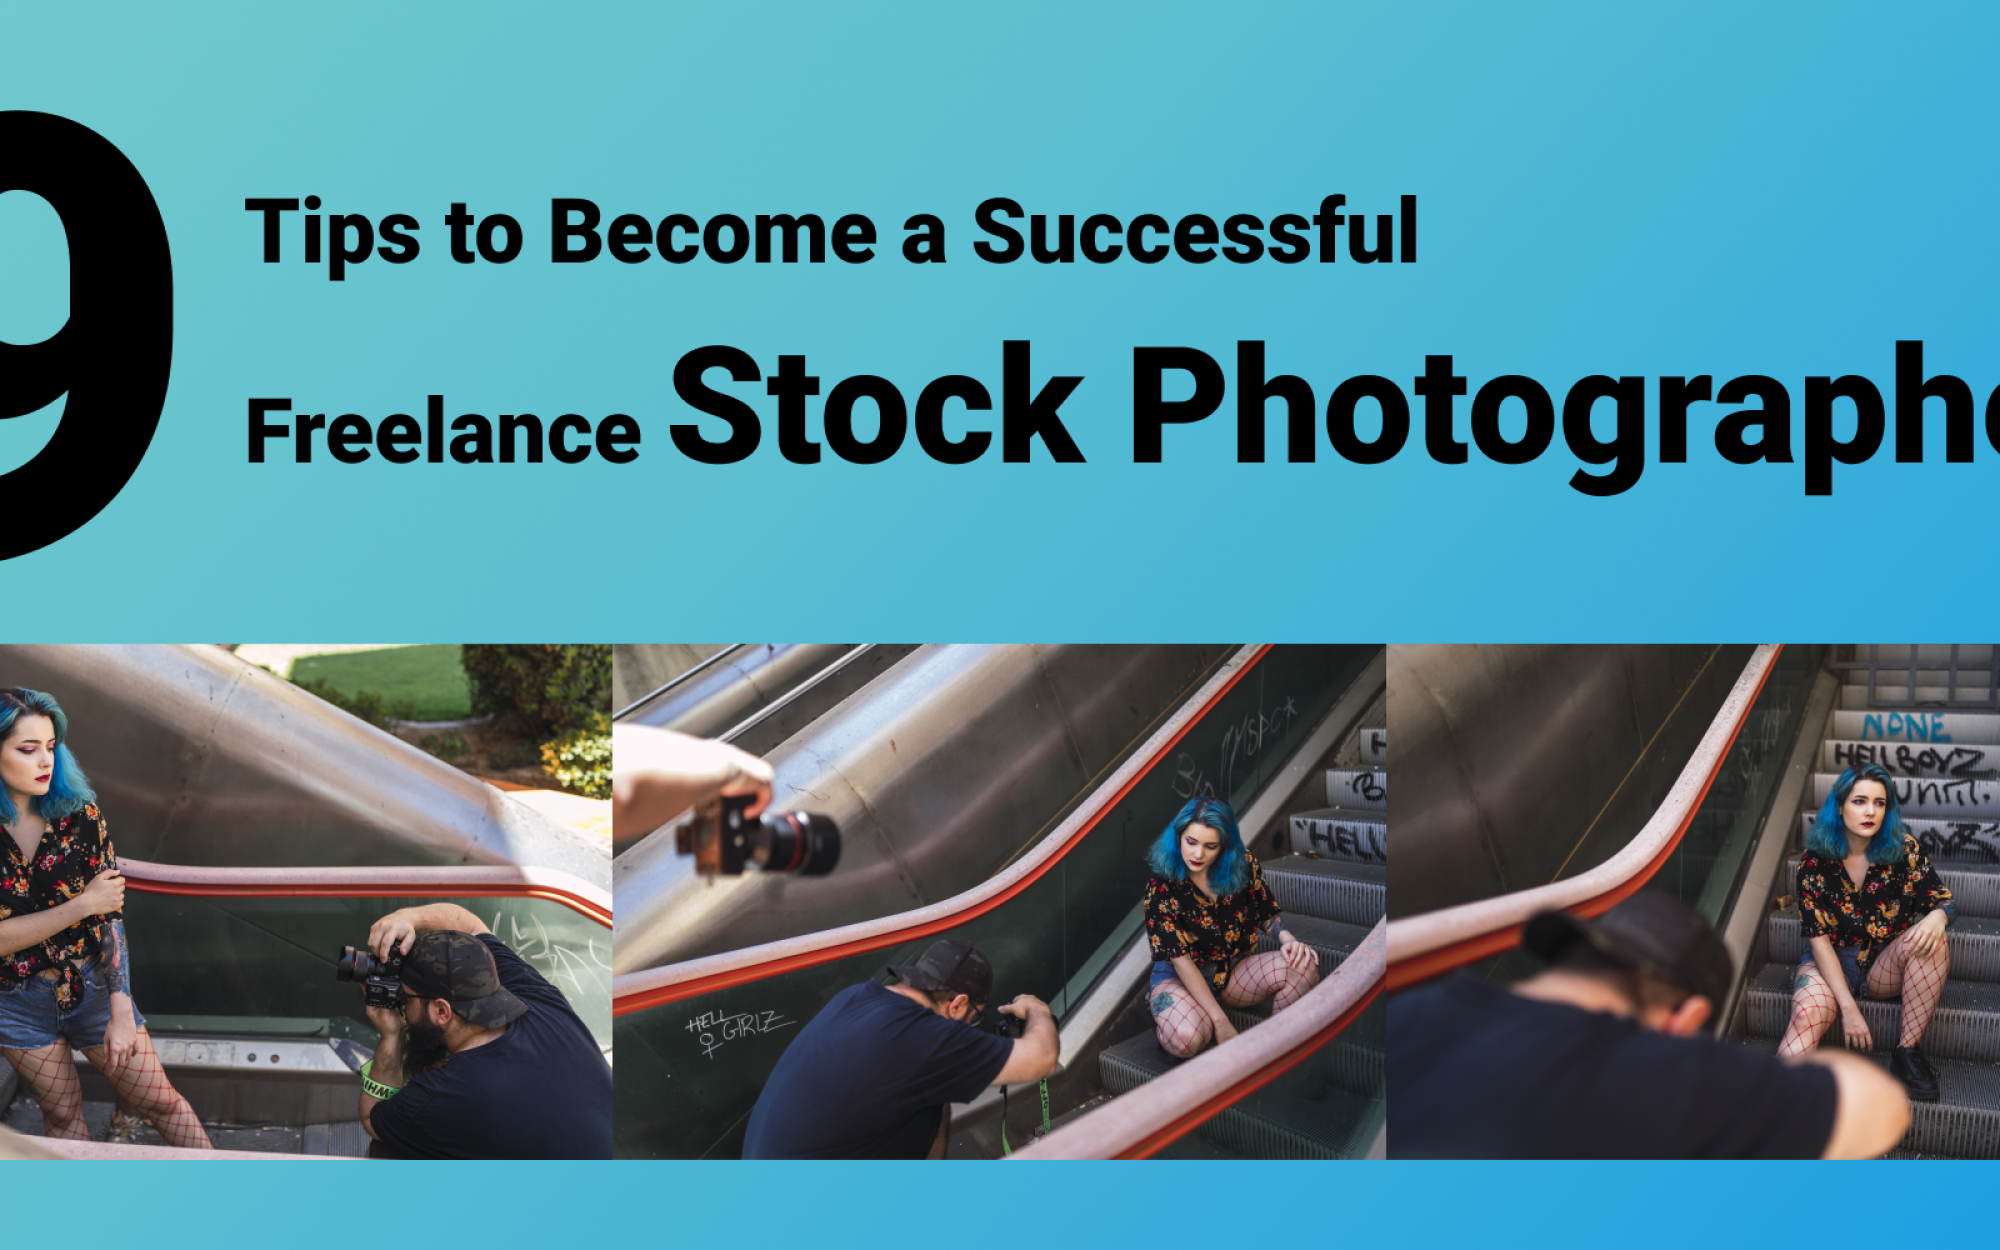 9 tips to Become a Successful Freelance Stock Photographer